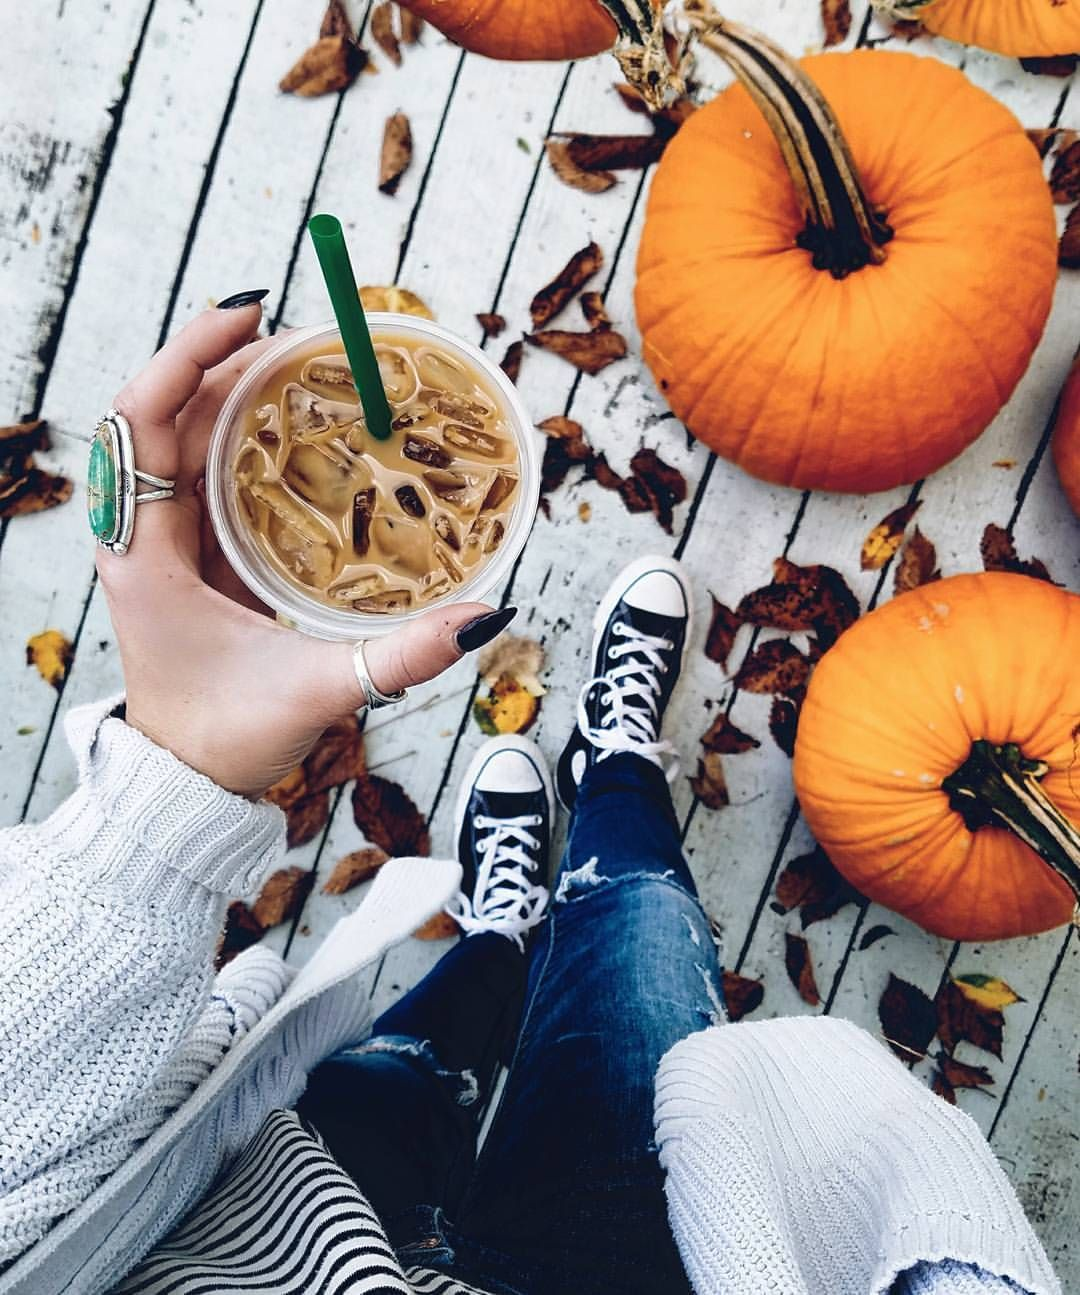 Sugar And Spice And All Things Nice Qotd Small Town Apple Orchard Roasting Fire Or Halloween Party Fall Tumblr Autumn Aesthetic Fall Mood Board